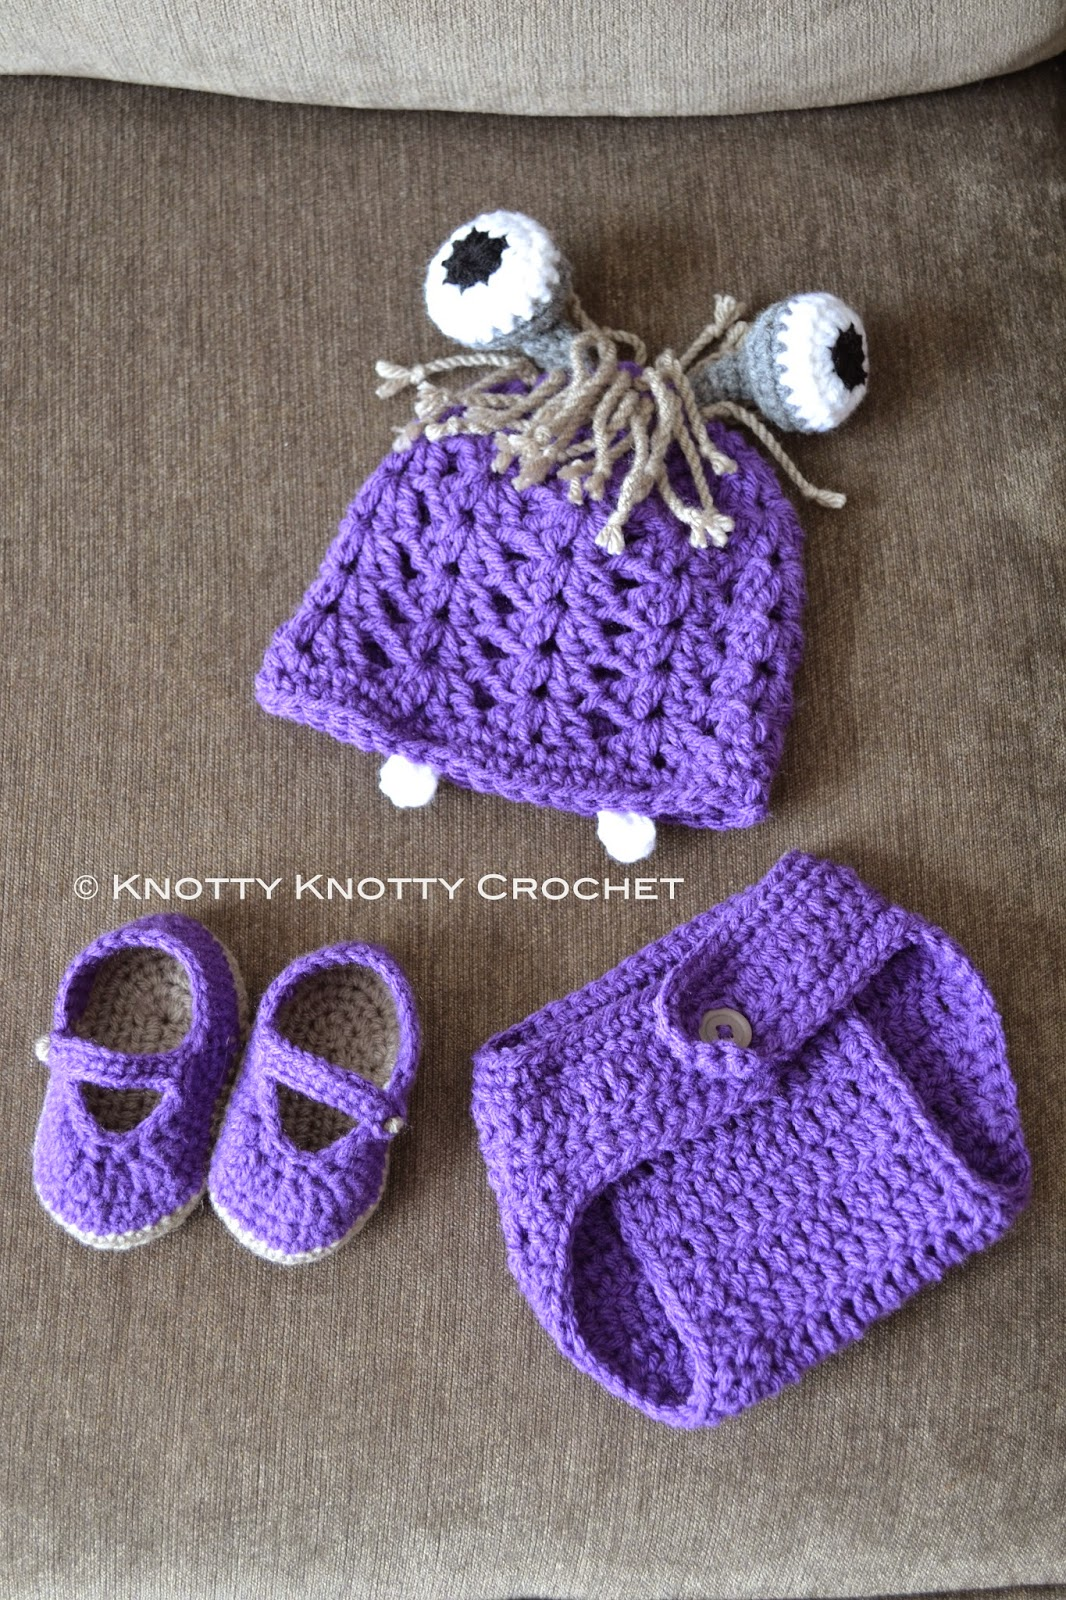 25 Crochet Halloween Costumes For New Born Babies That Are